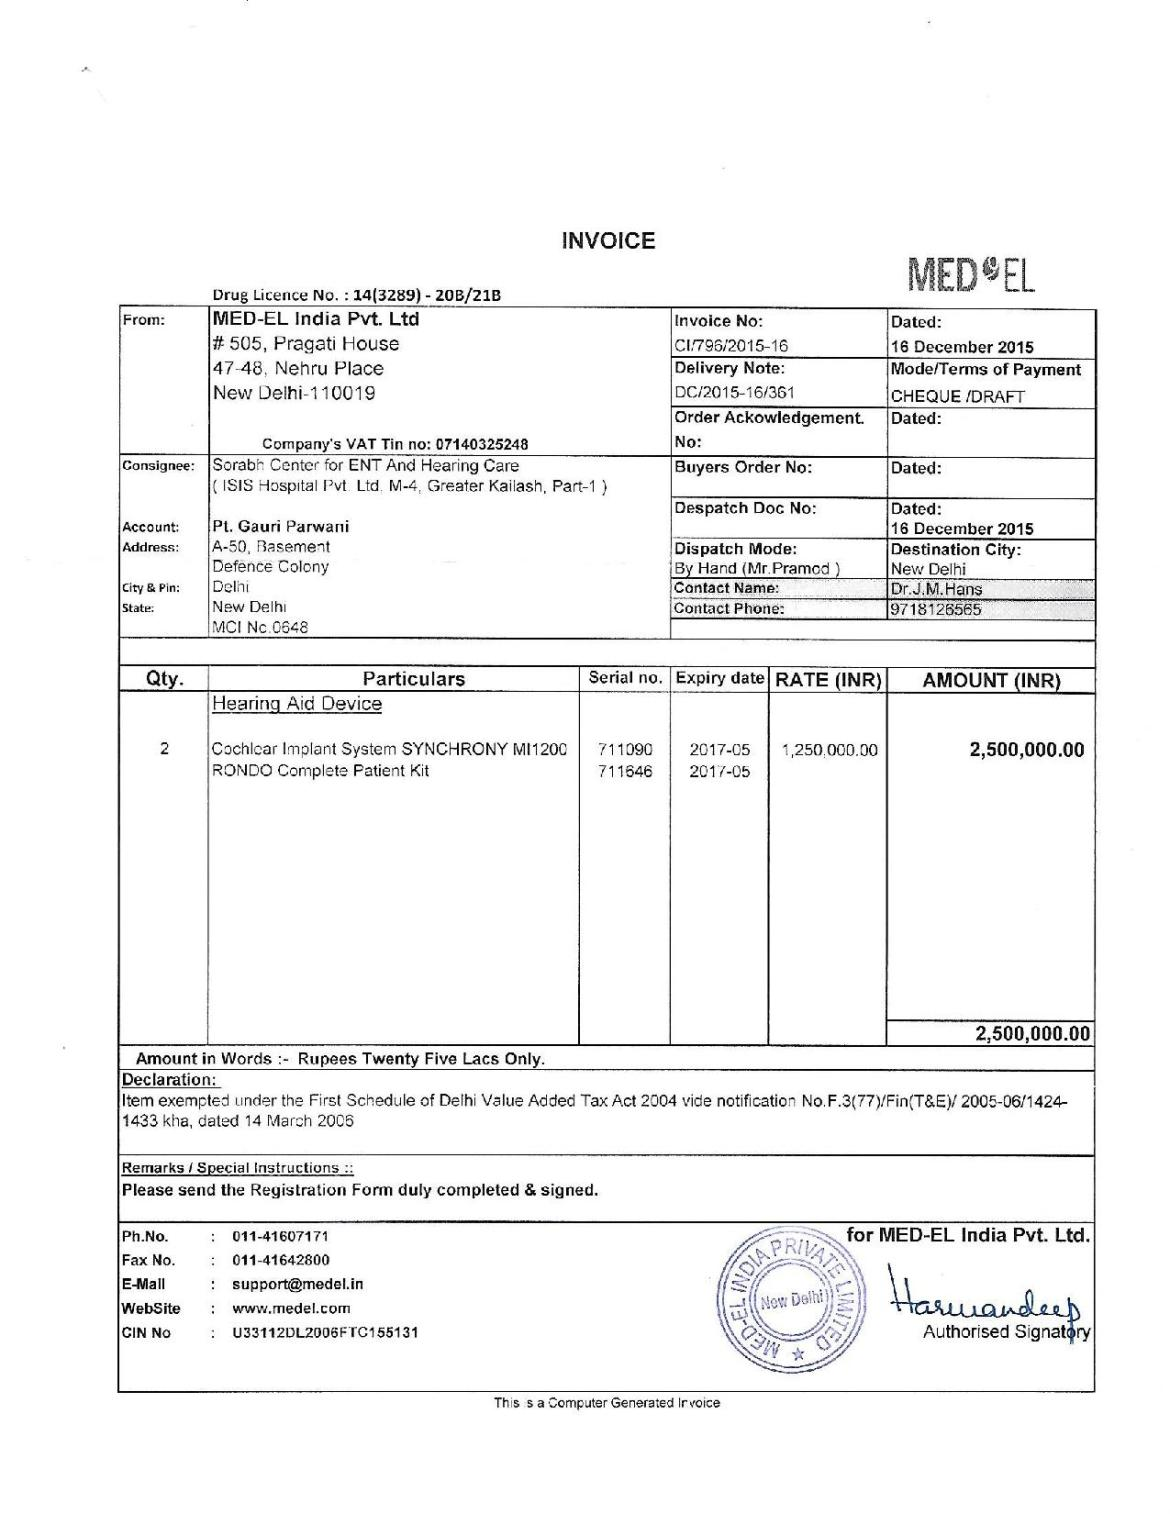 Cochlear Implant Invoice